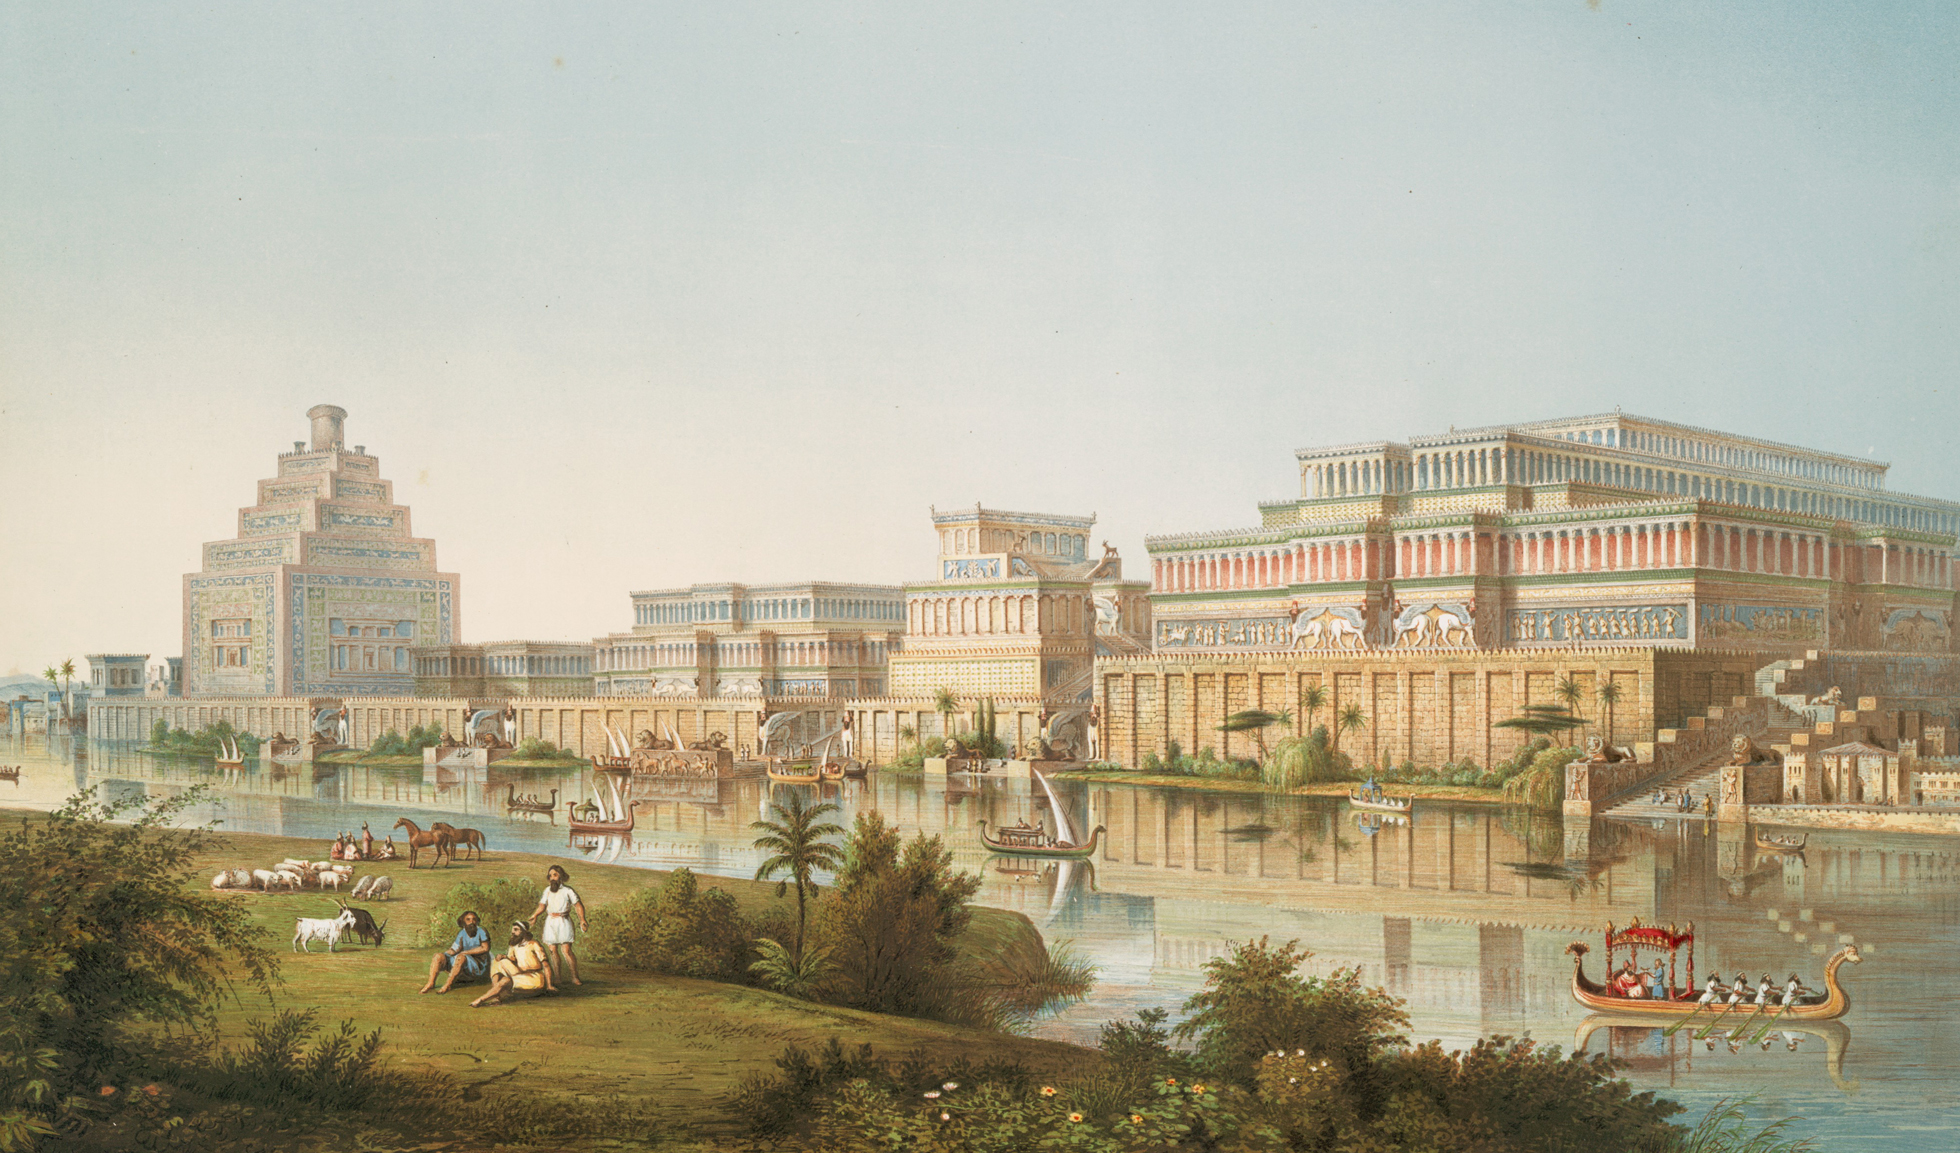 Historical city travel guide: Nineveh, 7th century BC